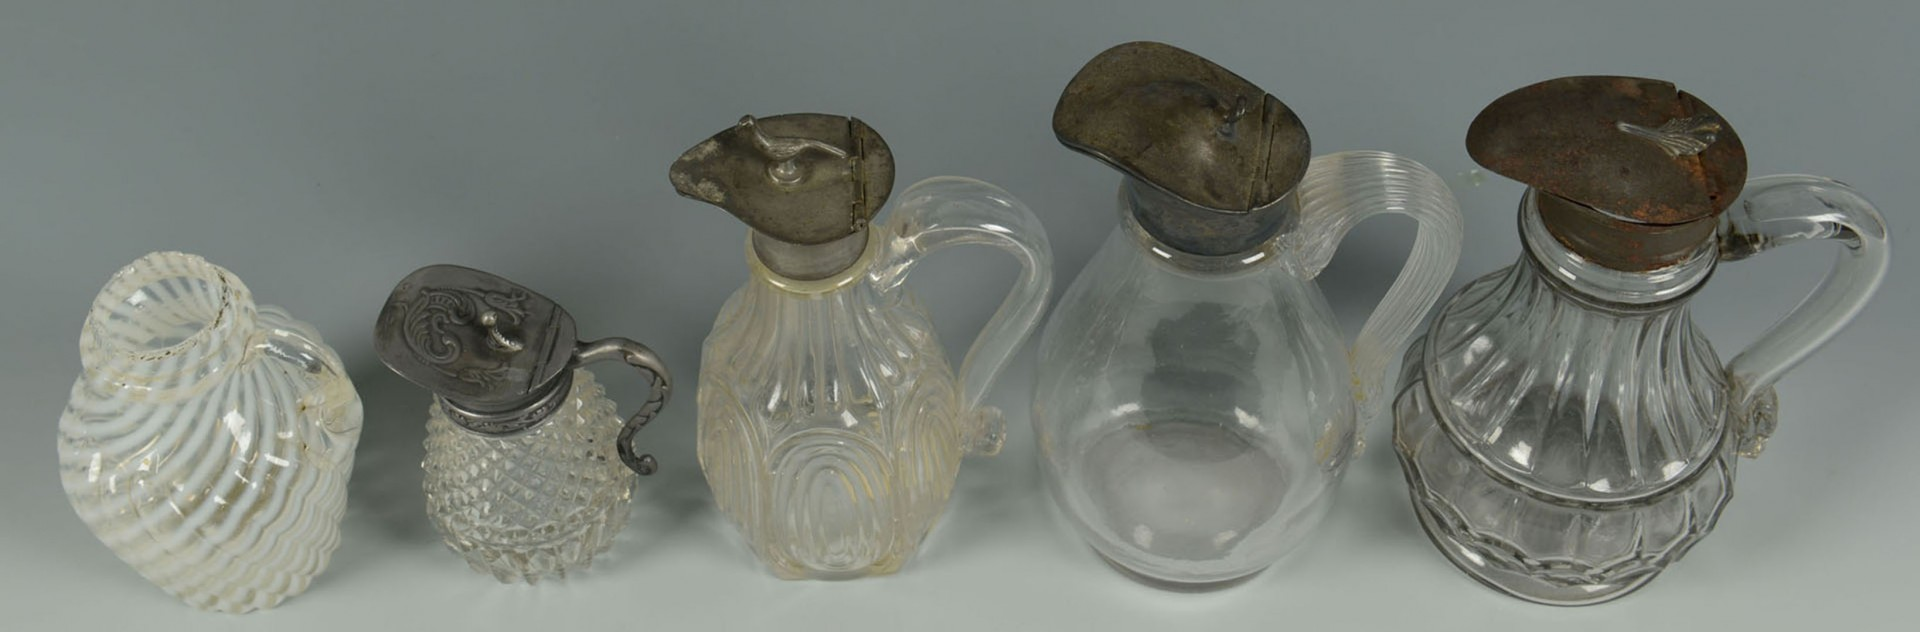 Lot 2872307: Grouping of glass cruets and yellow goblets, 10 pc